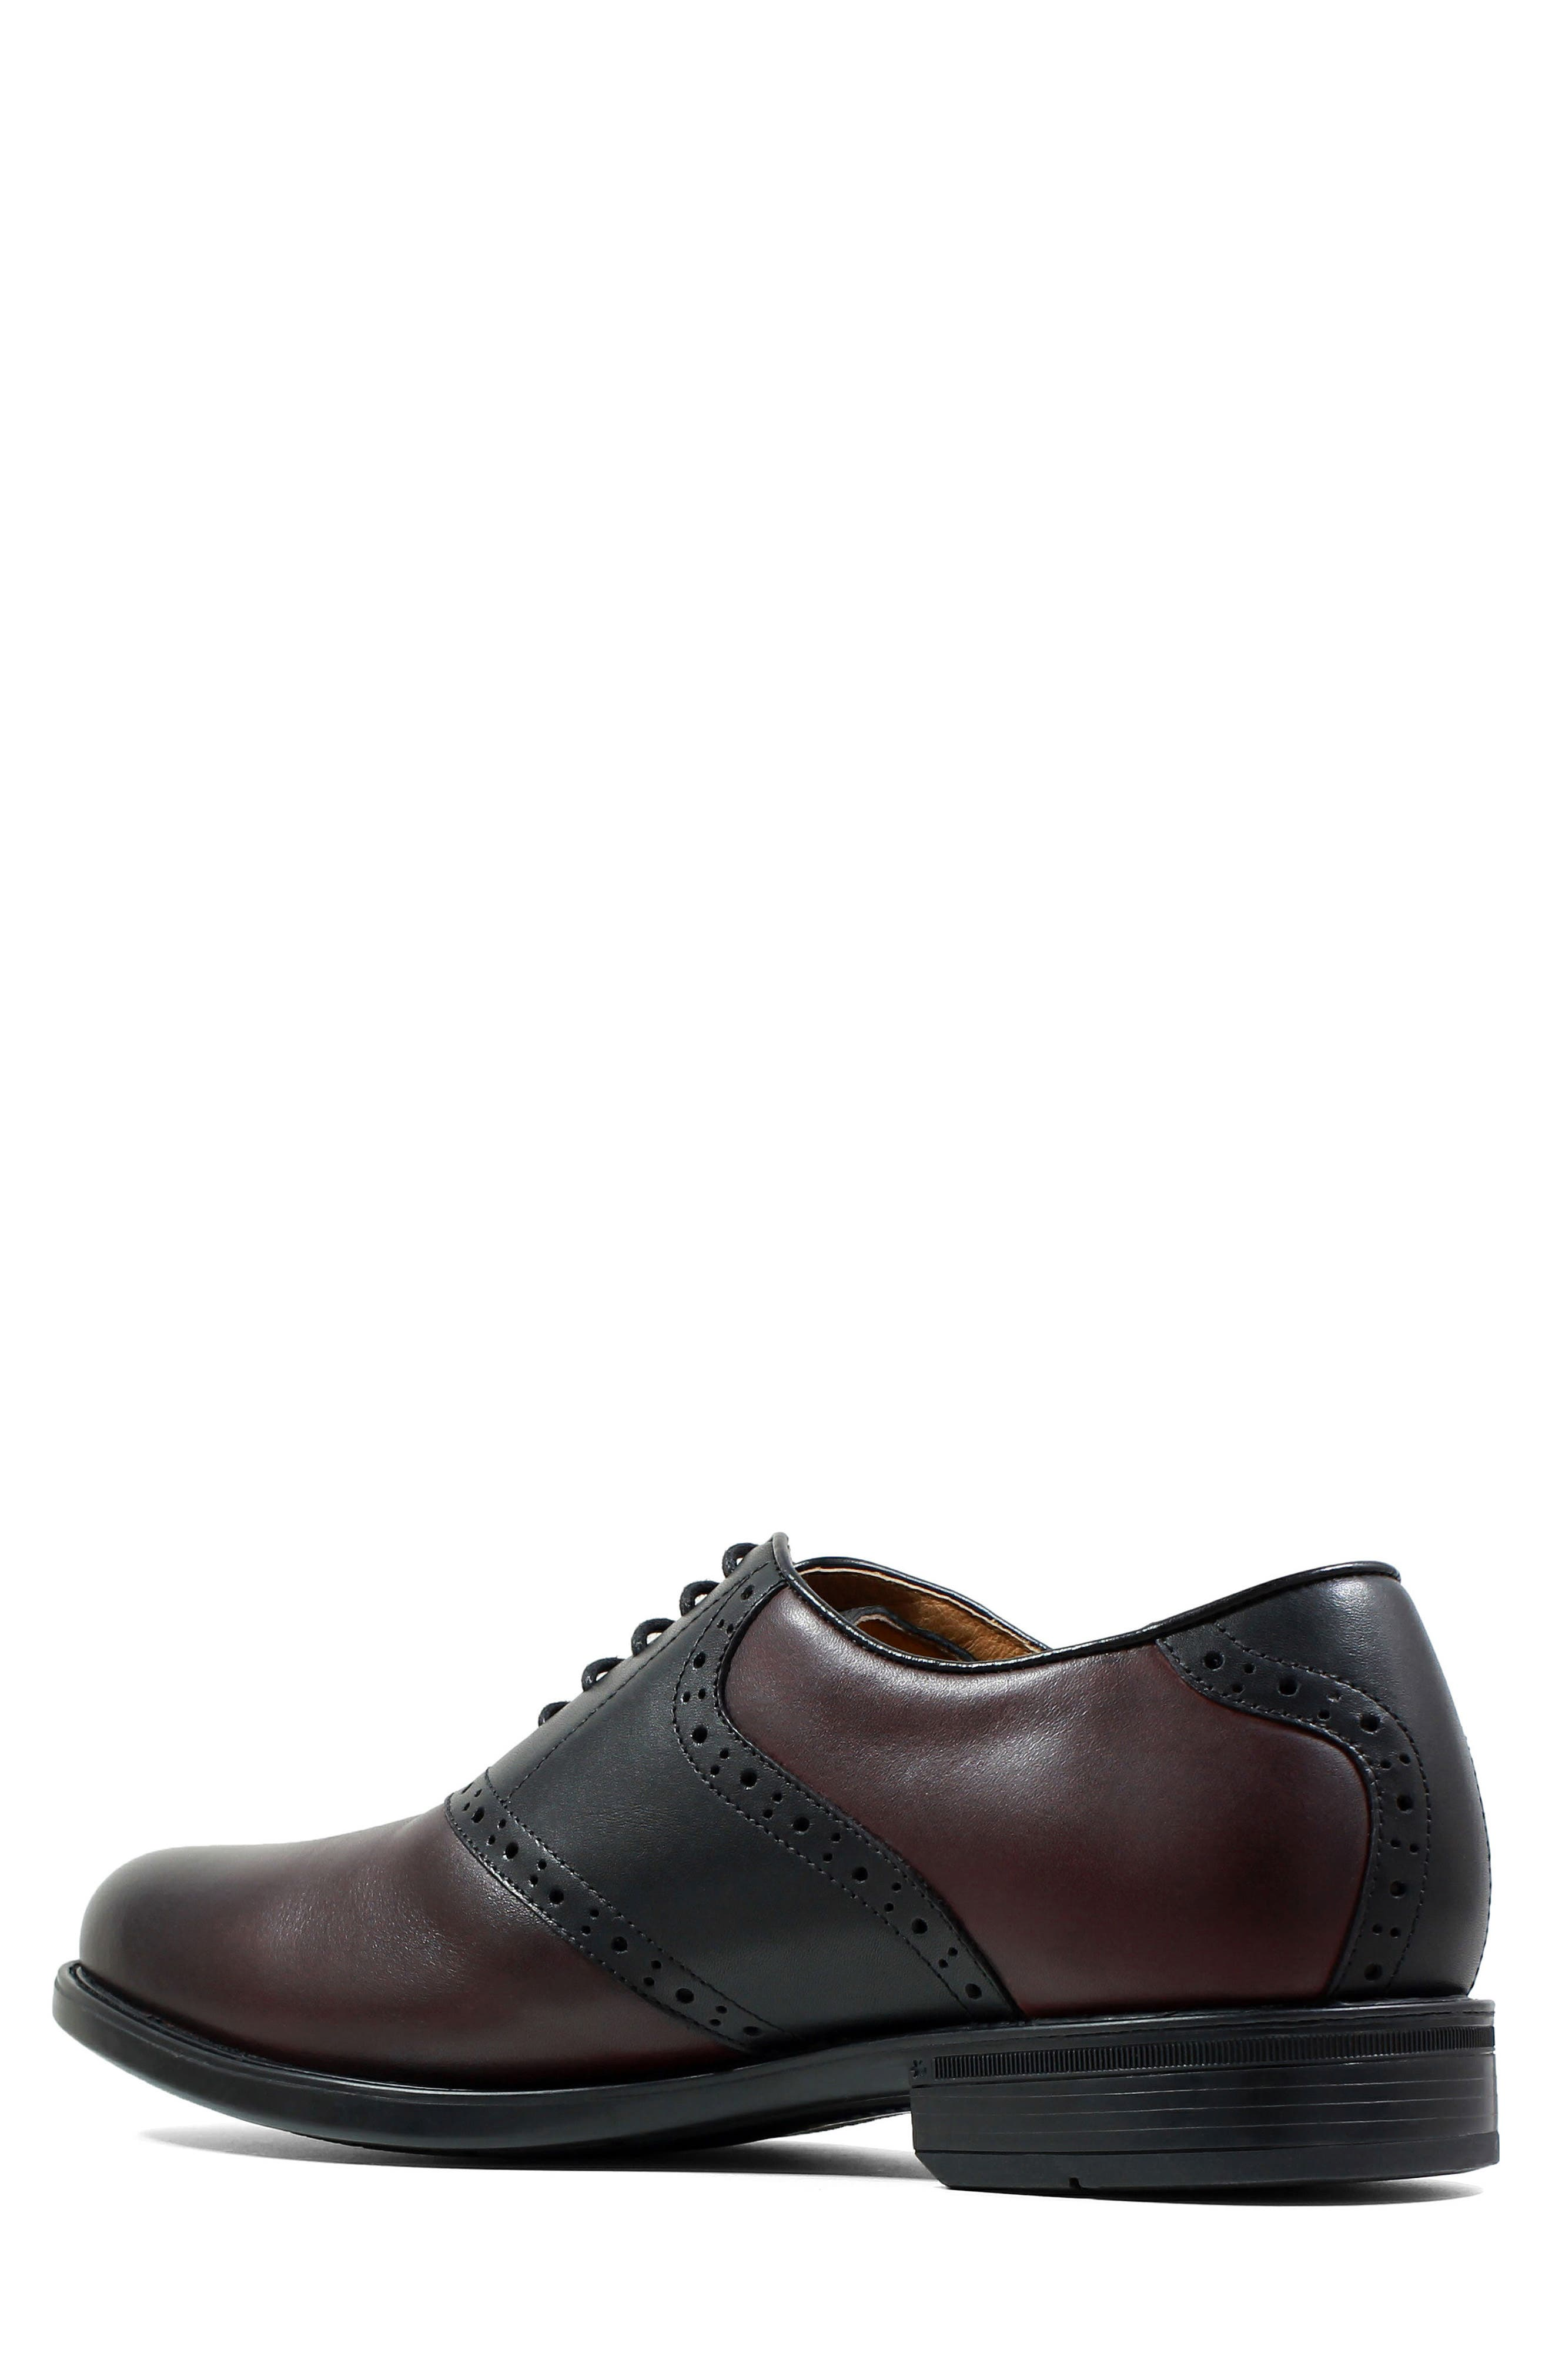 Midtown Saddle Oxford,                             Alternate thumbnail 4, color,